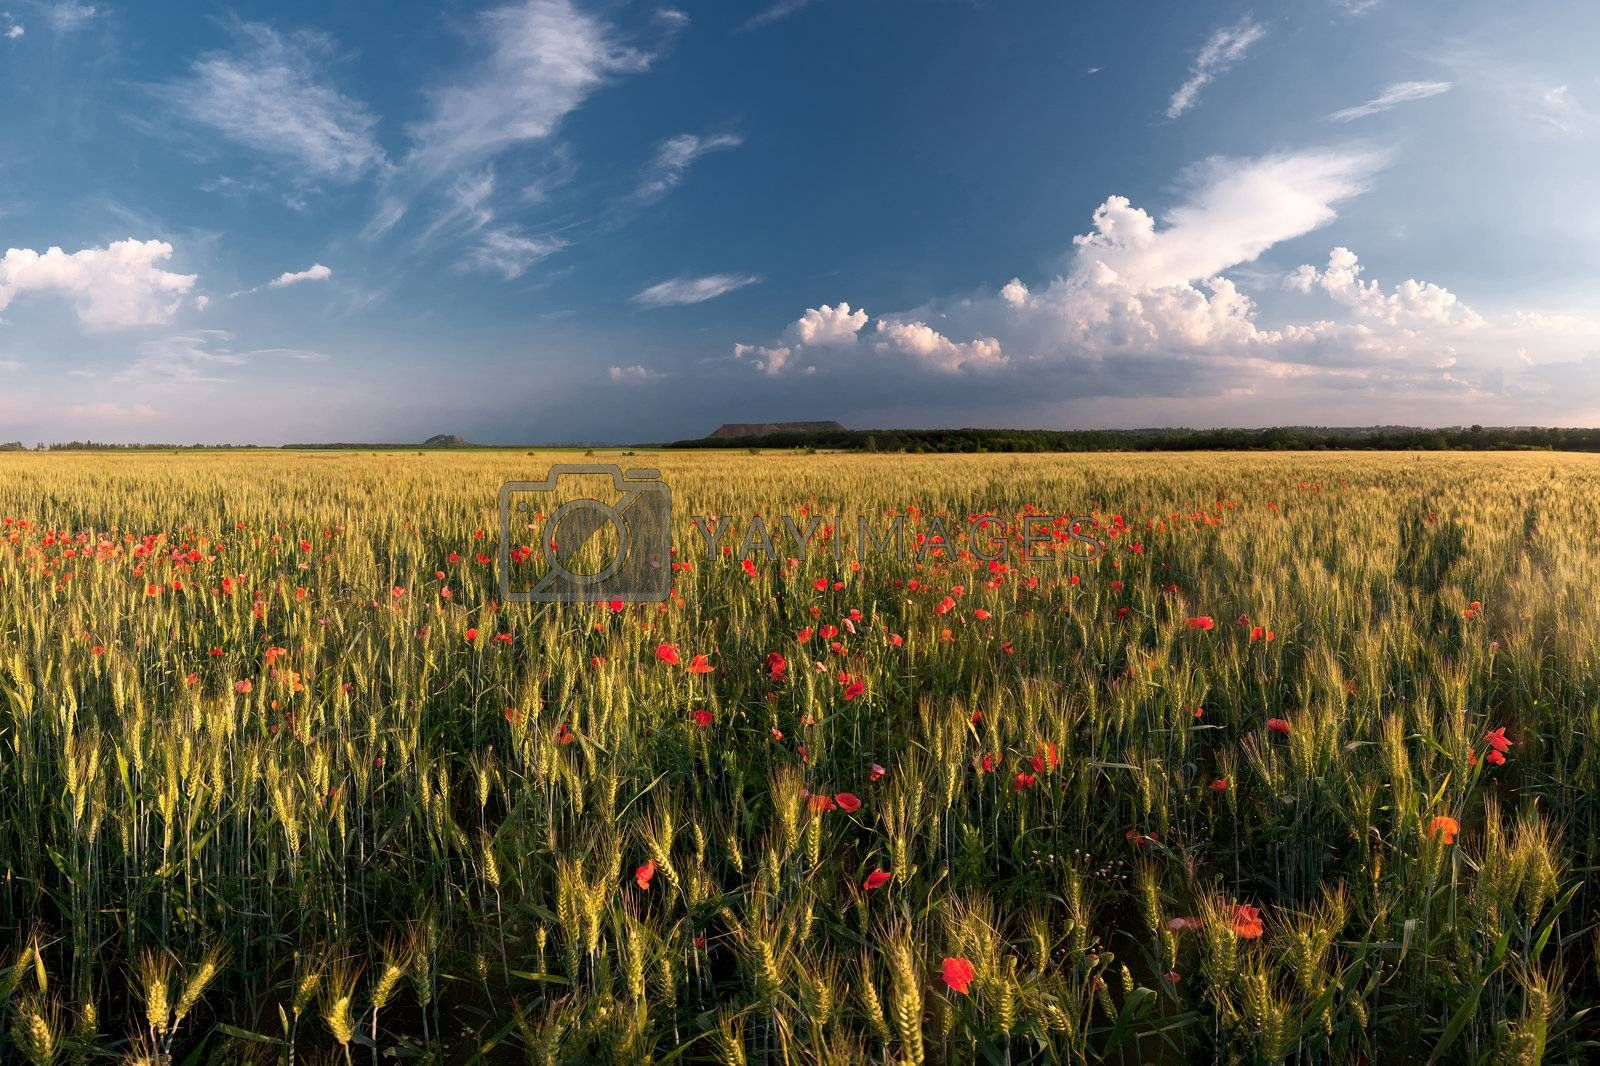 Big wheat field with poppies